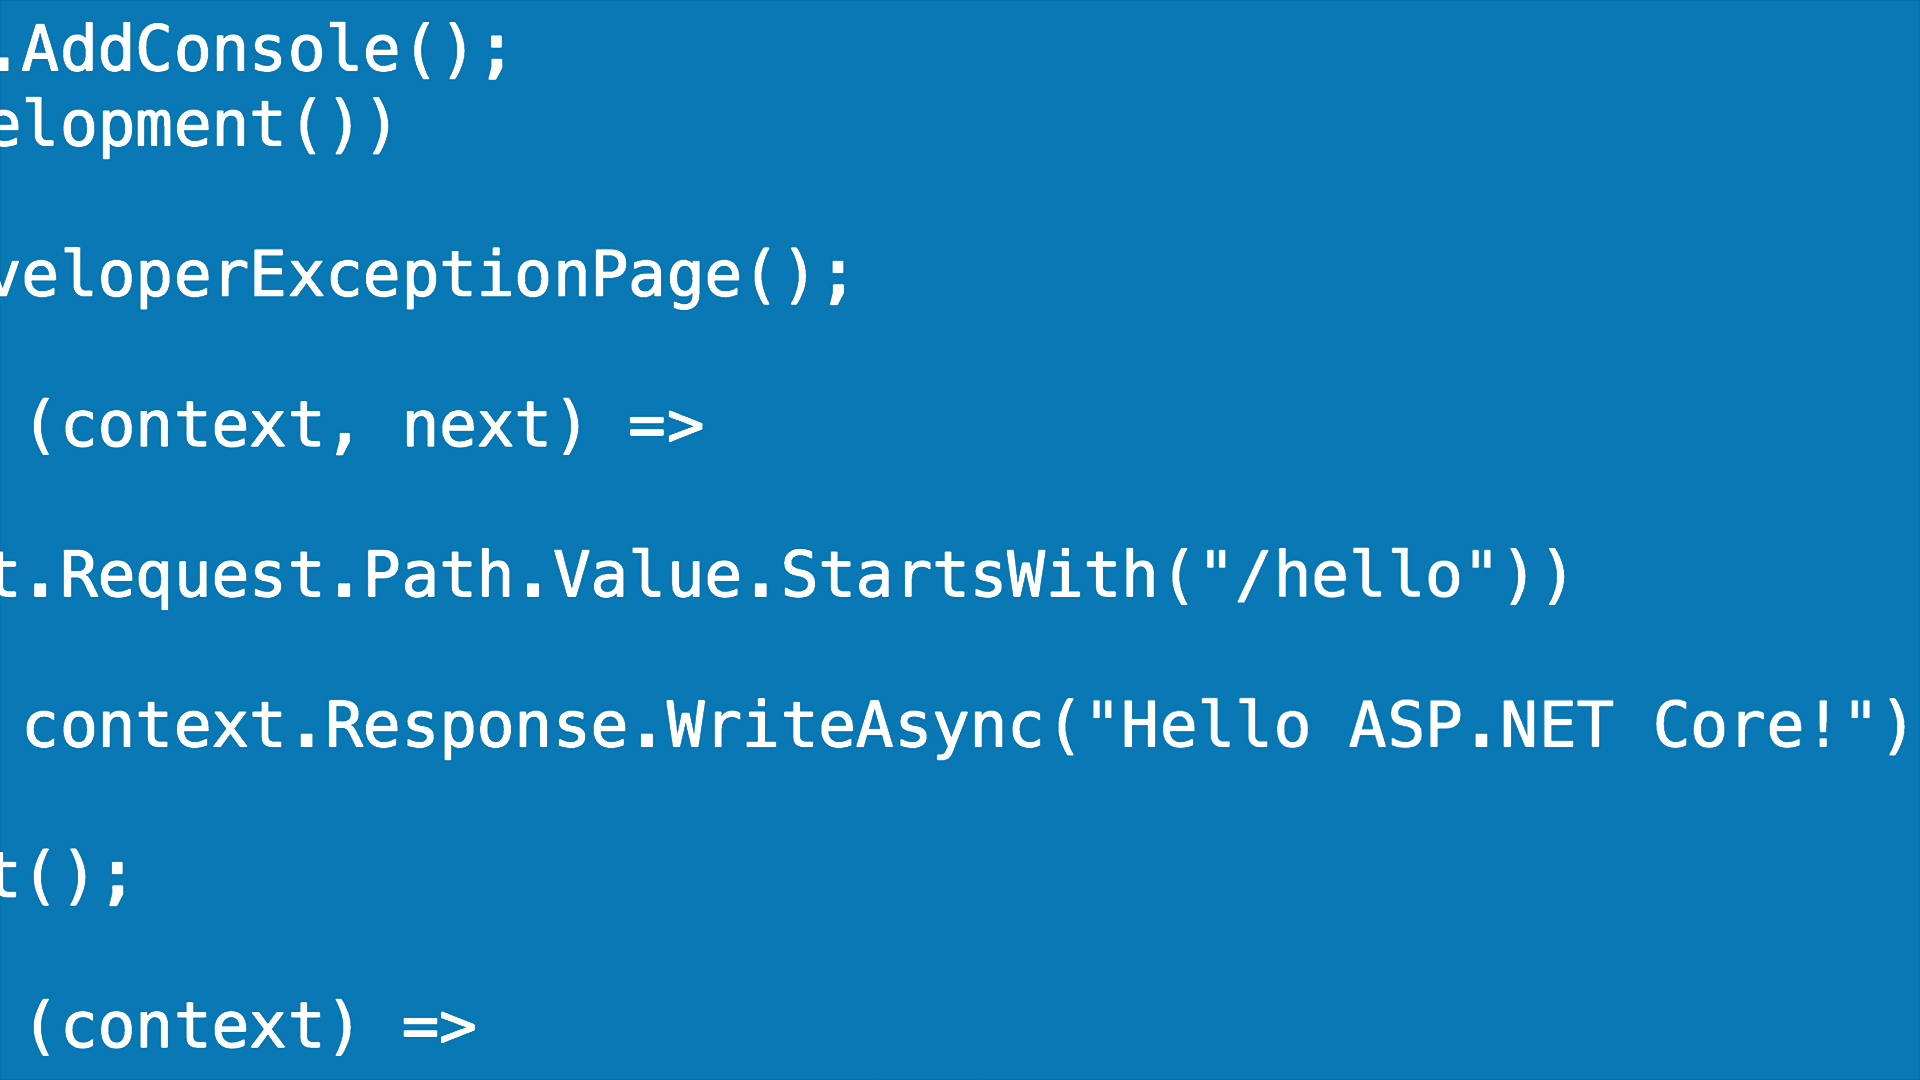 How to create web api in asp net core mvc using entity - How To Create Web Api In Asp Net Core Mvc Using Entity 46